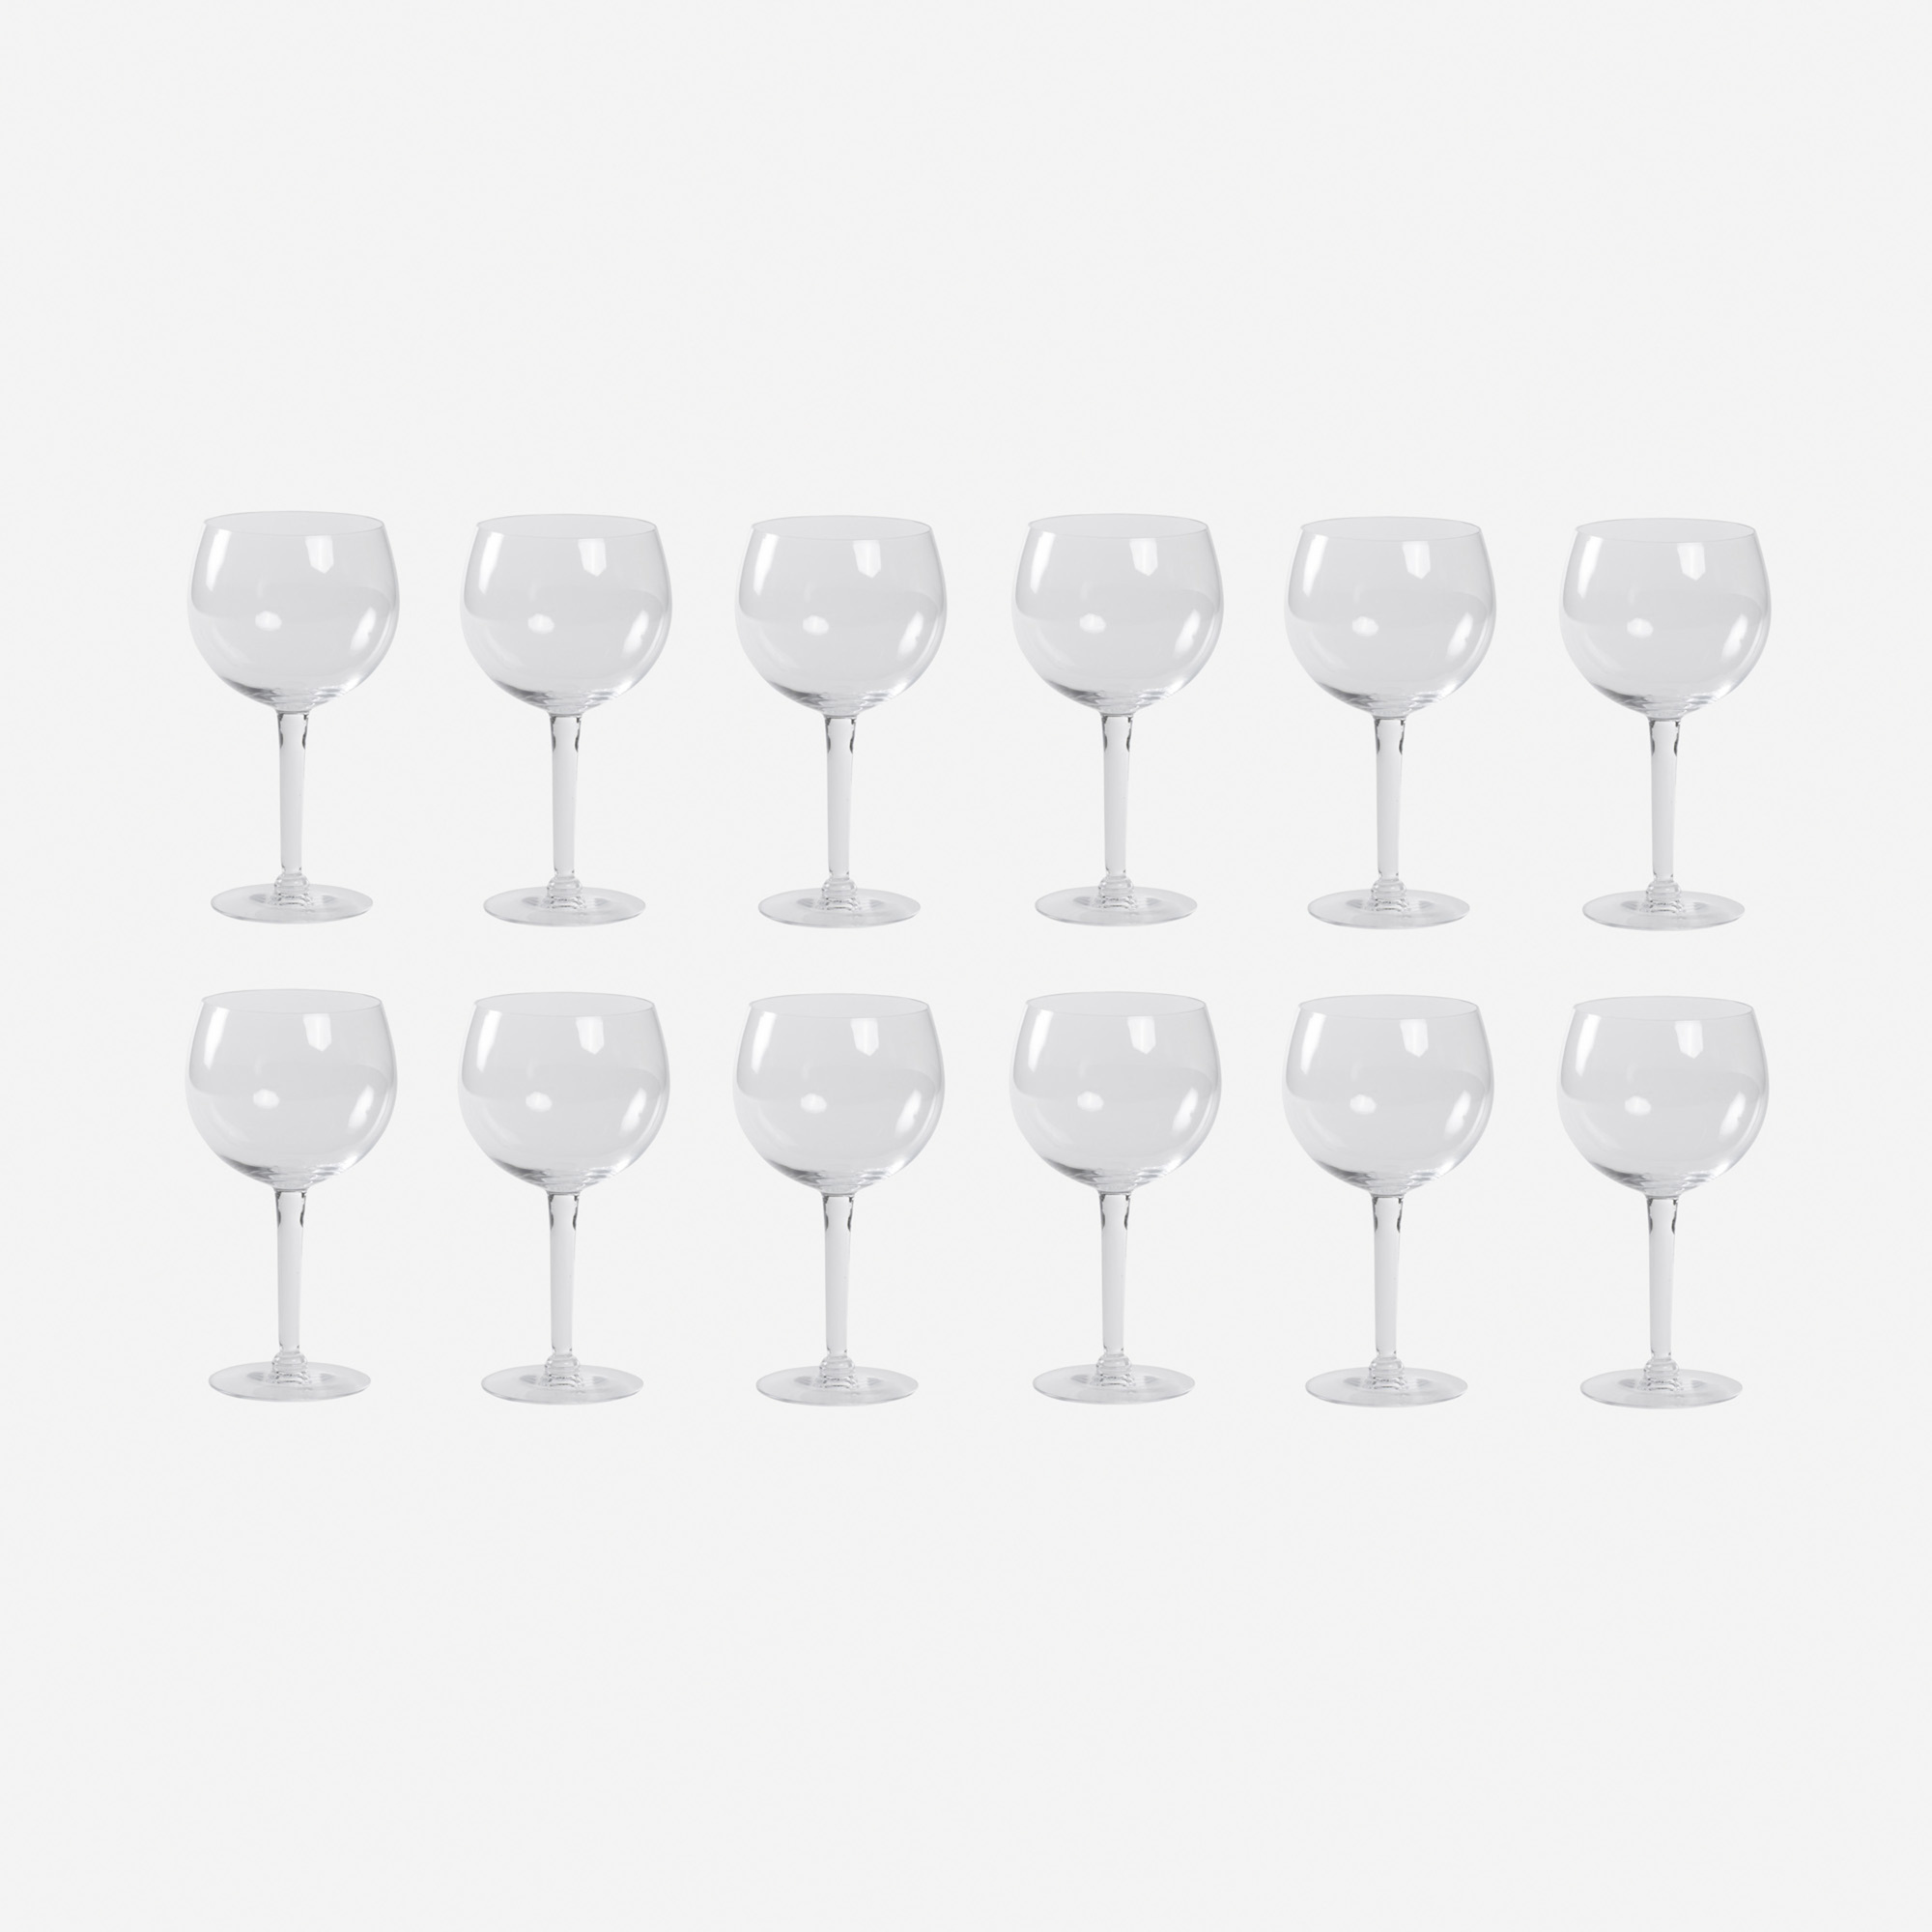 815: Garth and Ada Louise Huxtable / Red Wine glasses from The Four Seasons, set of twelve (1 of 1)